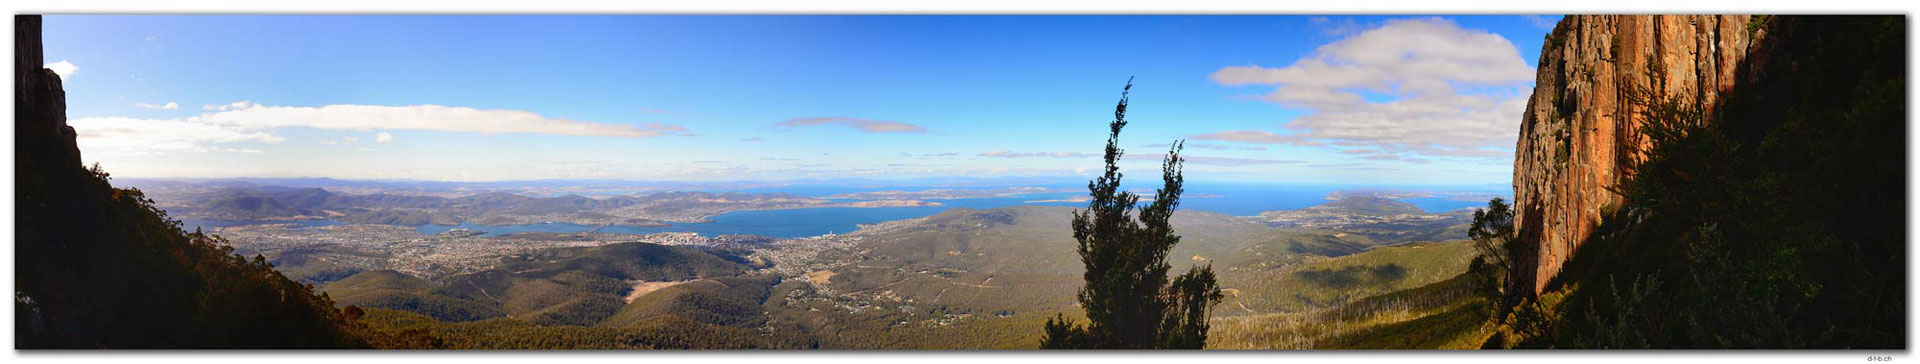 AU1296.Hobart panoramic view from the Organ Pipes